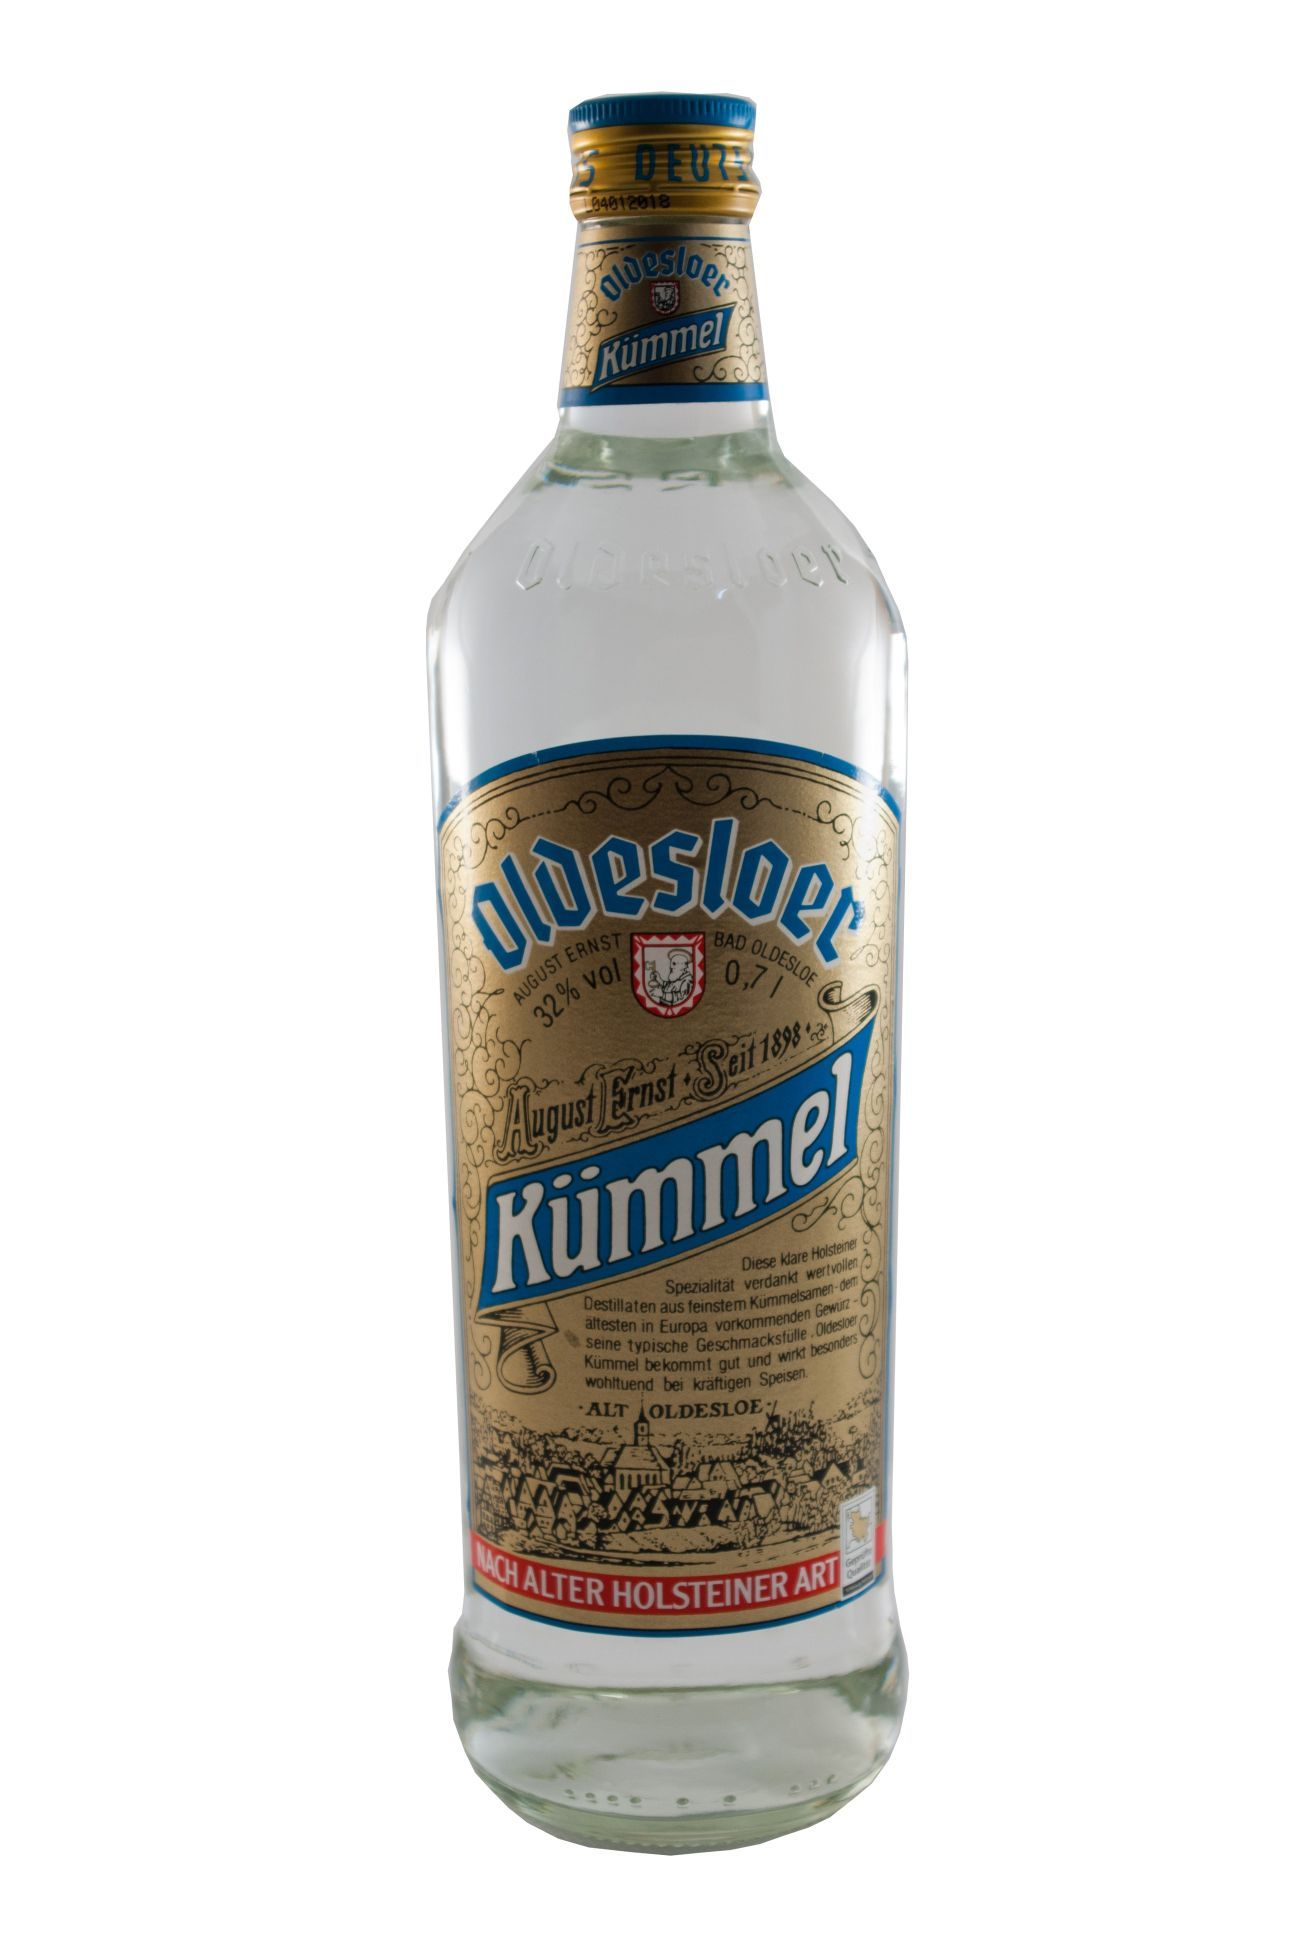 Oldesloer Kümmel Schnaps / 32% vol (0,7L) | Spirits | Pinterest ...